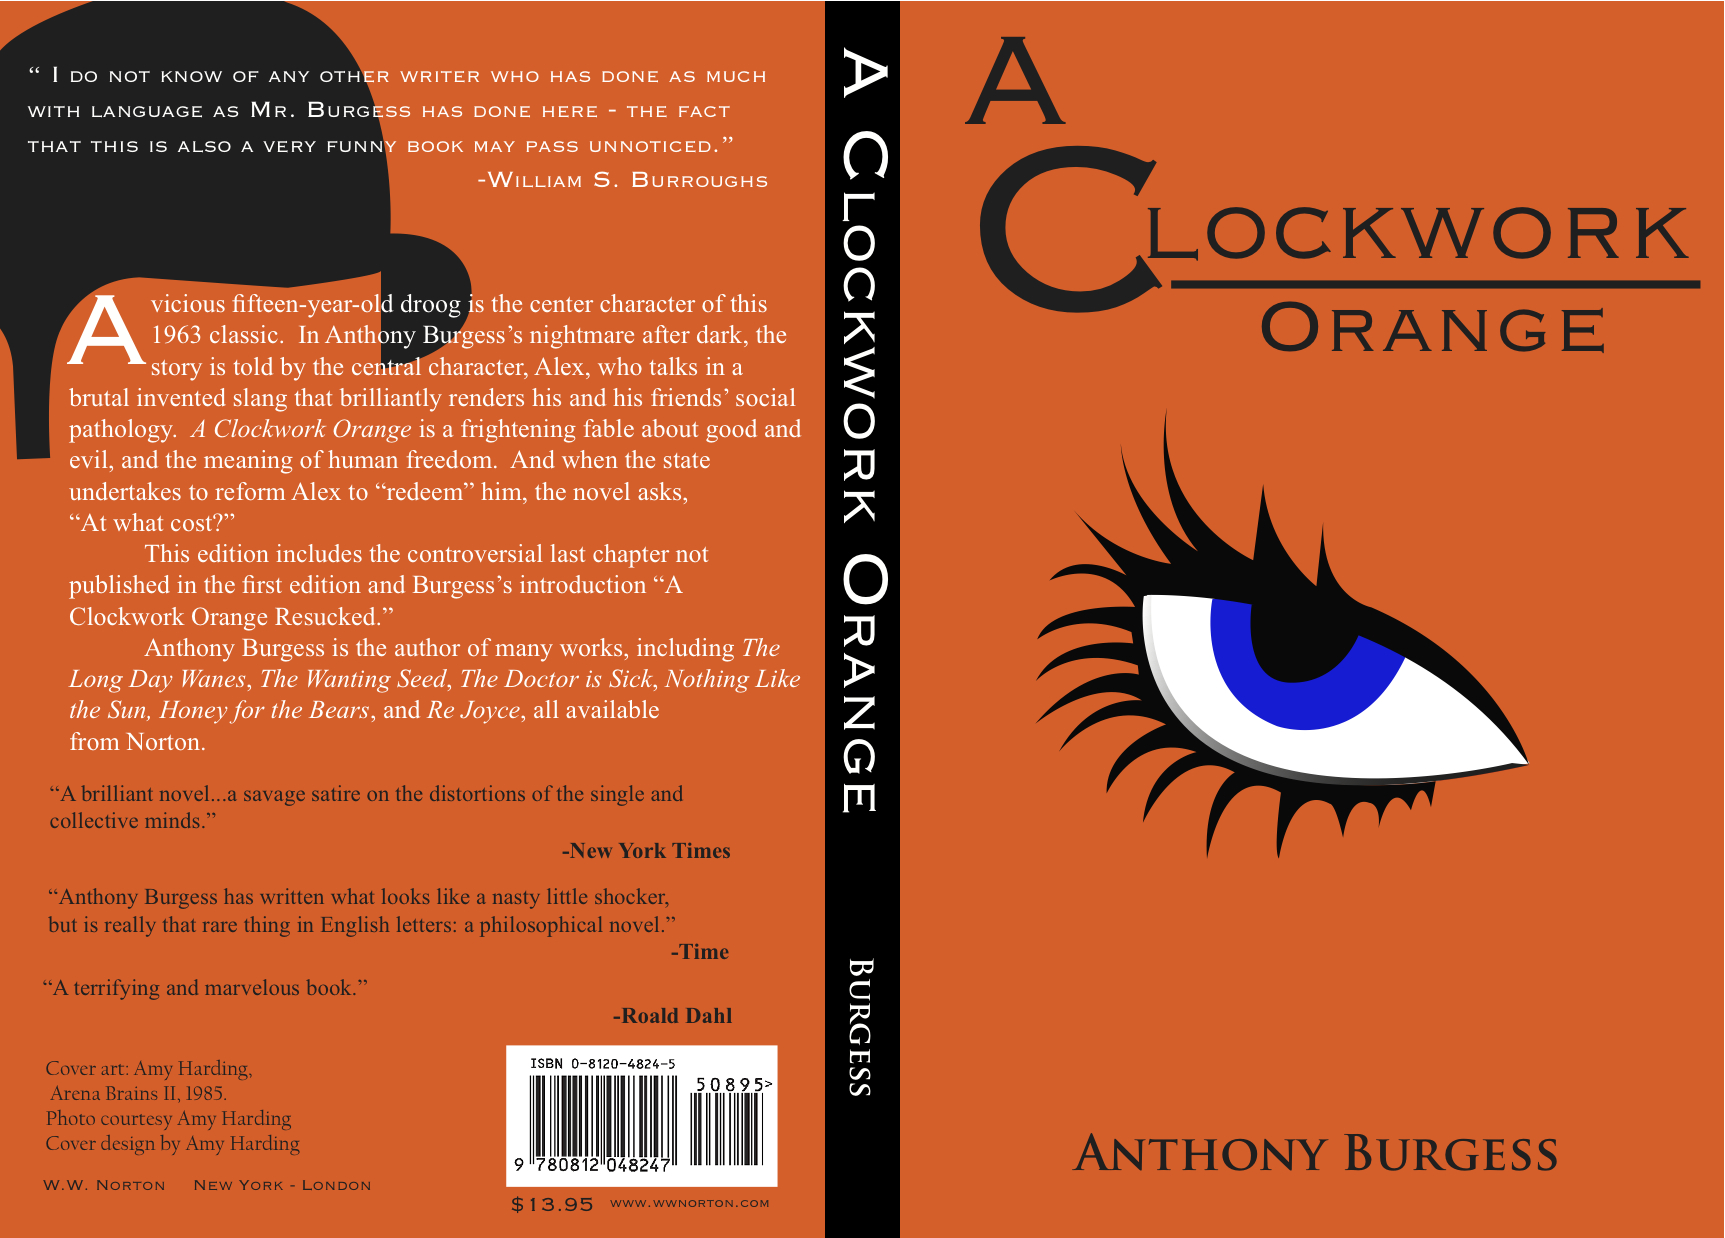 an analysis of the novel the clockwork orange by anthony burgess Complete summary of anthony burgess' a clockwork orange enotes plot summaries cover all the significant action of a clockwork orange.